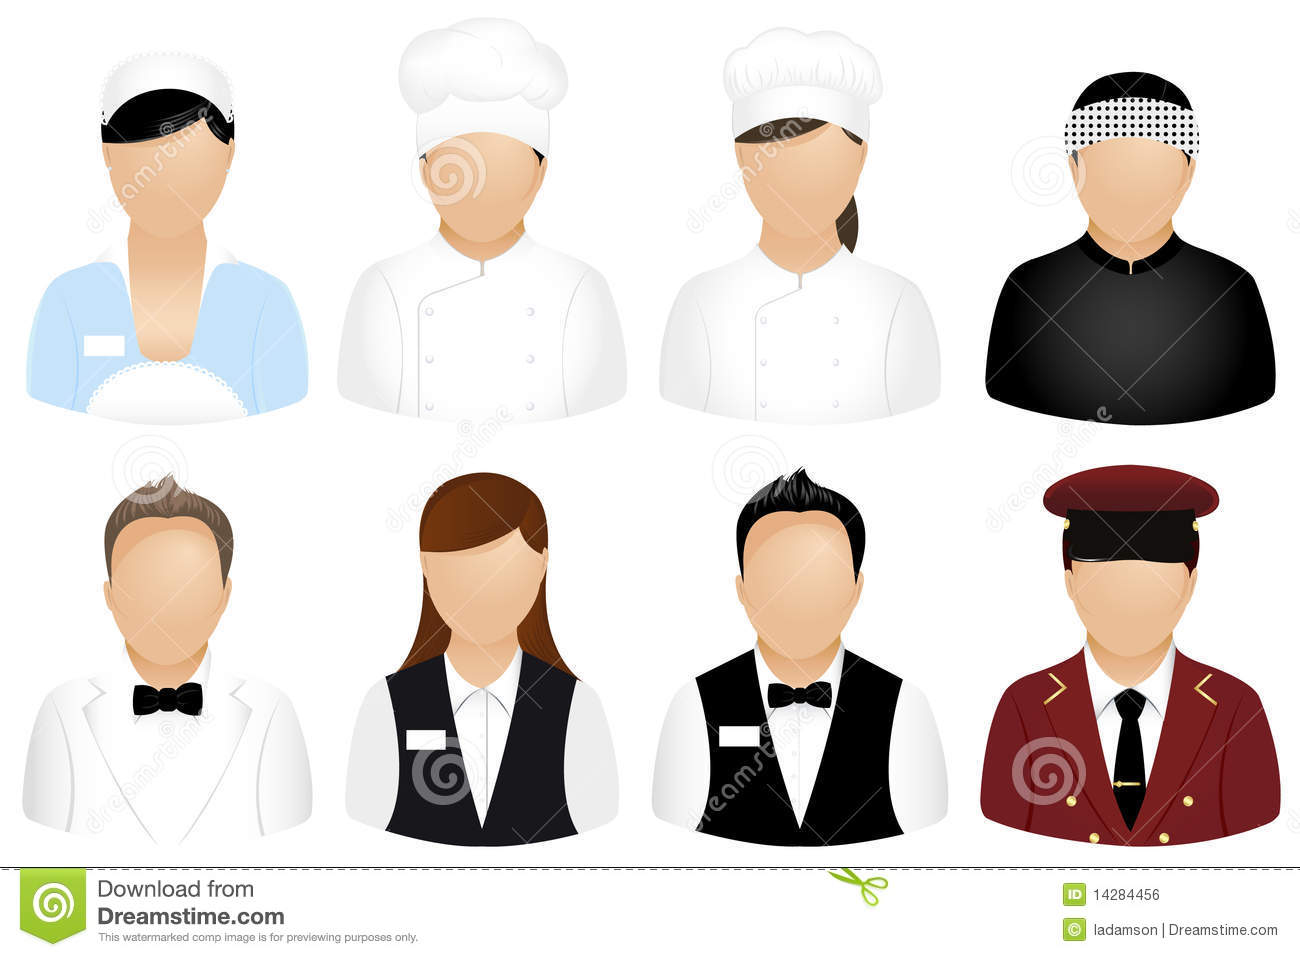 Restaurant manager clipart clipart free stock Restaurant Clipart Free Download | Free download best ... clipart free stock